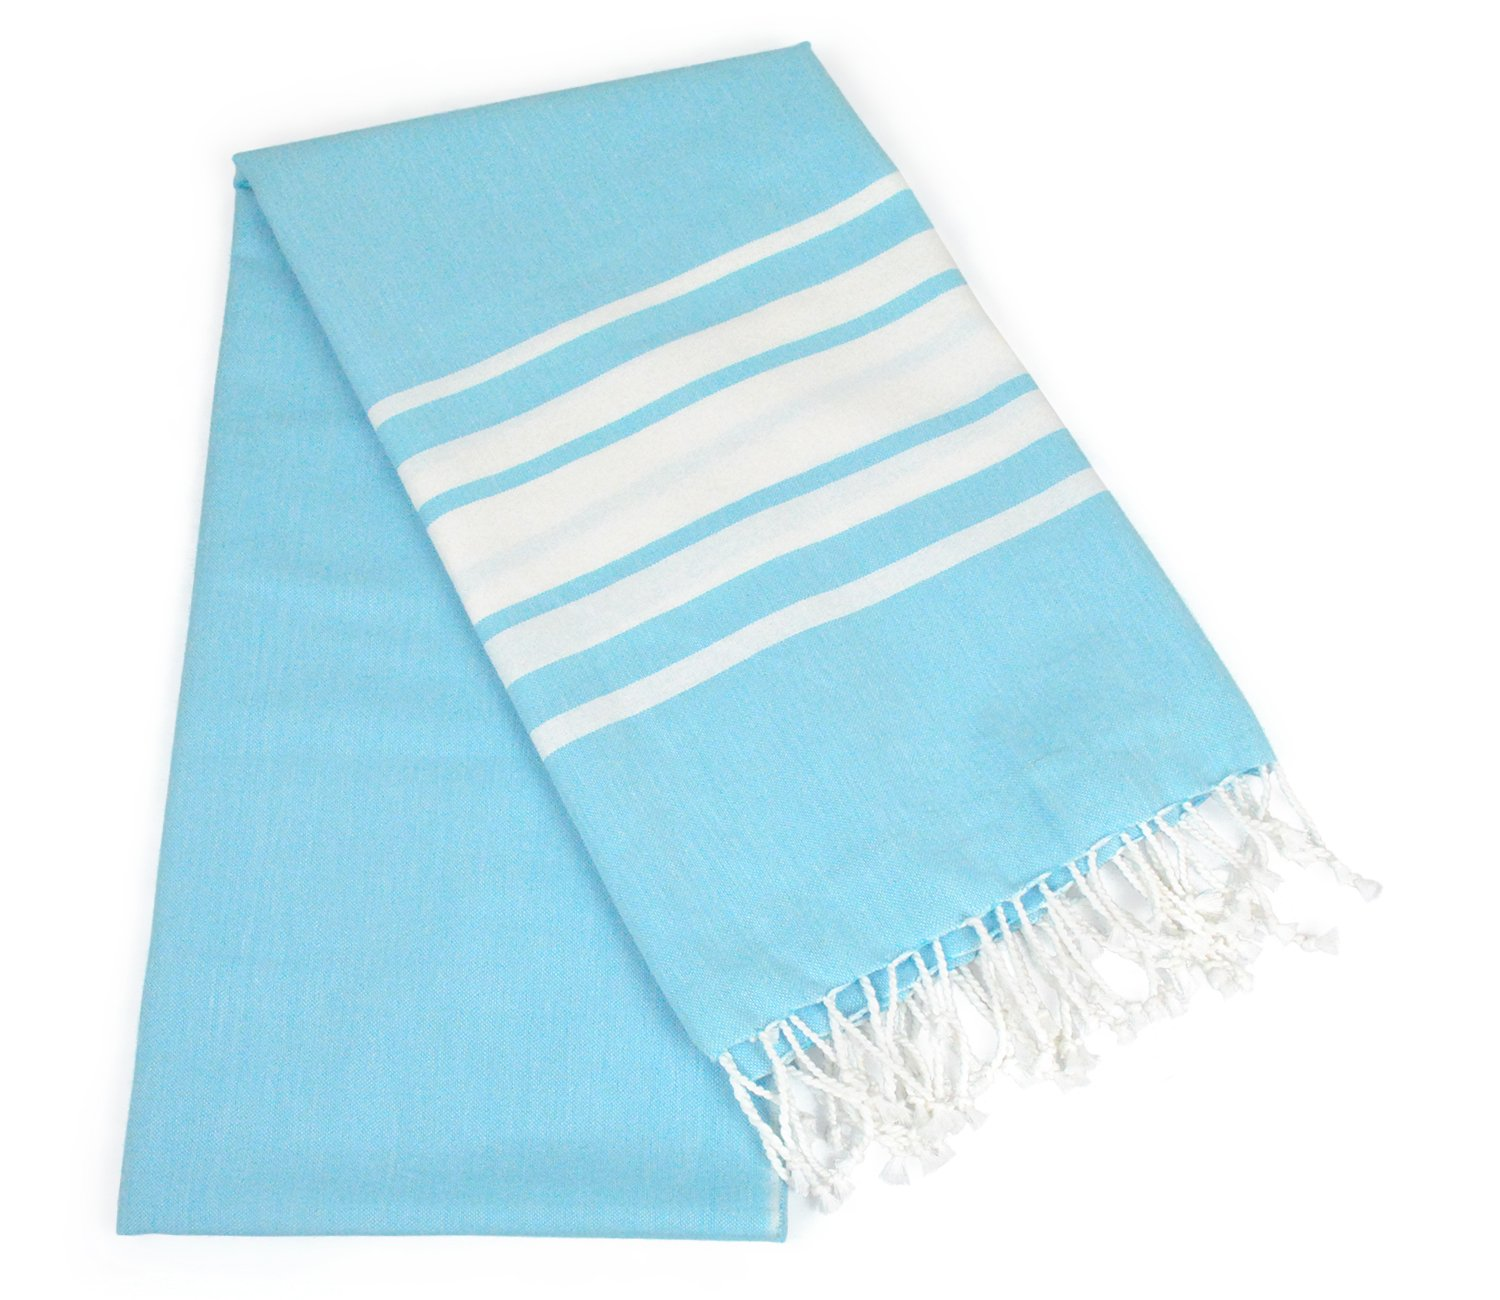 DII Peshtemal Turkish Super Soft, Absorbent, Oversized Bath Towel, Throw, & Blanket Fringe For Chair, Couch, Picnic, Camping, Beach, Yoga, Pilates, & Everyday Use , 39 x 71'' - Aqua Variagated Stripe